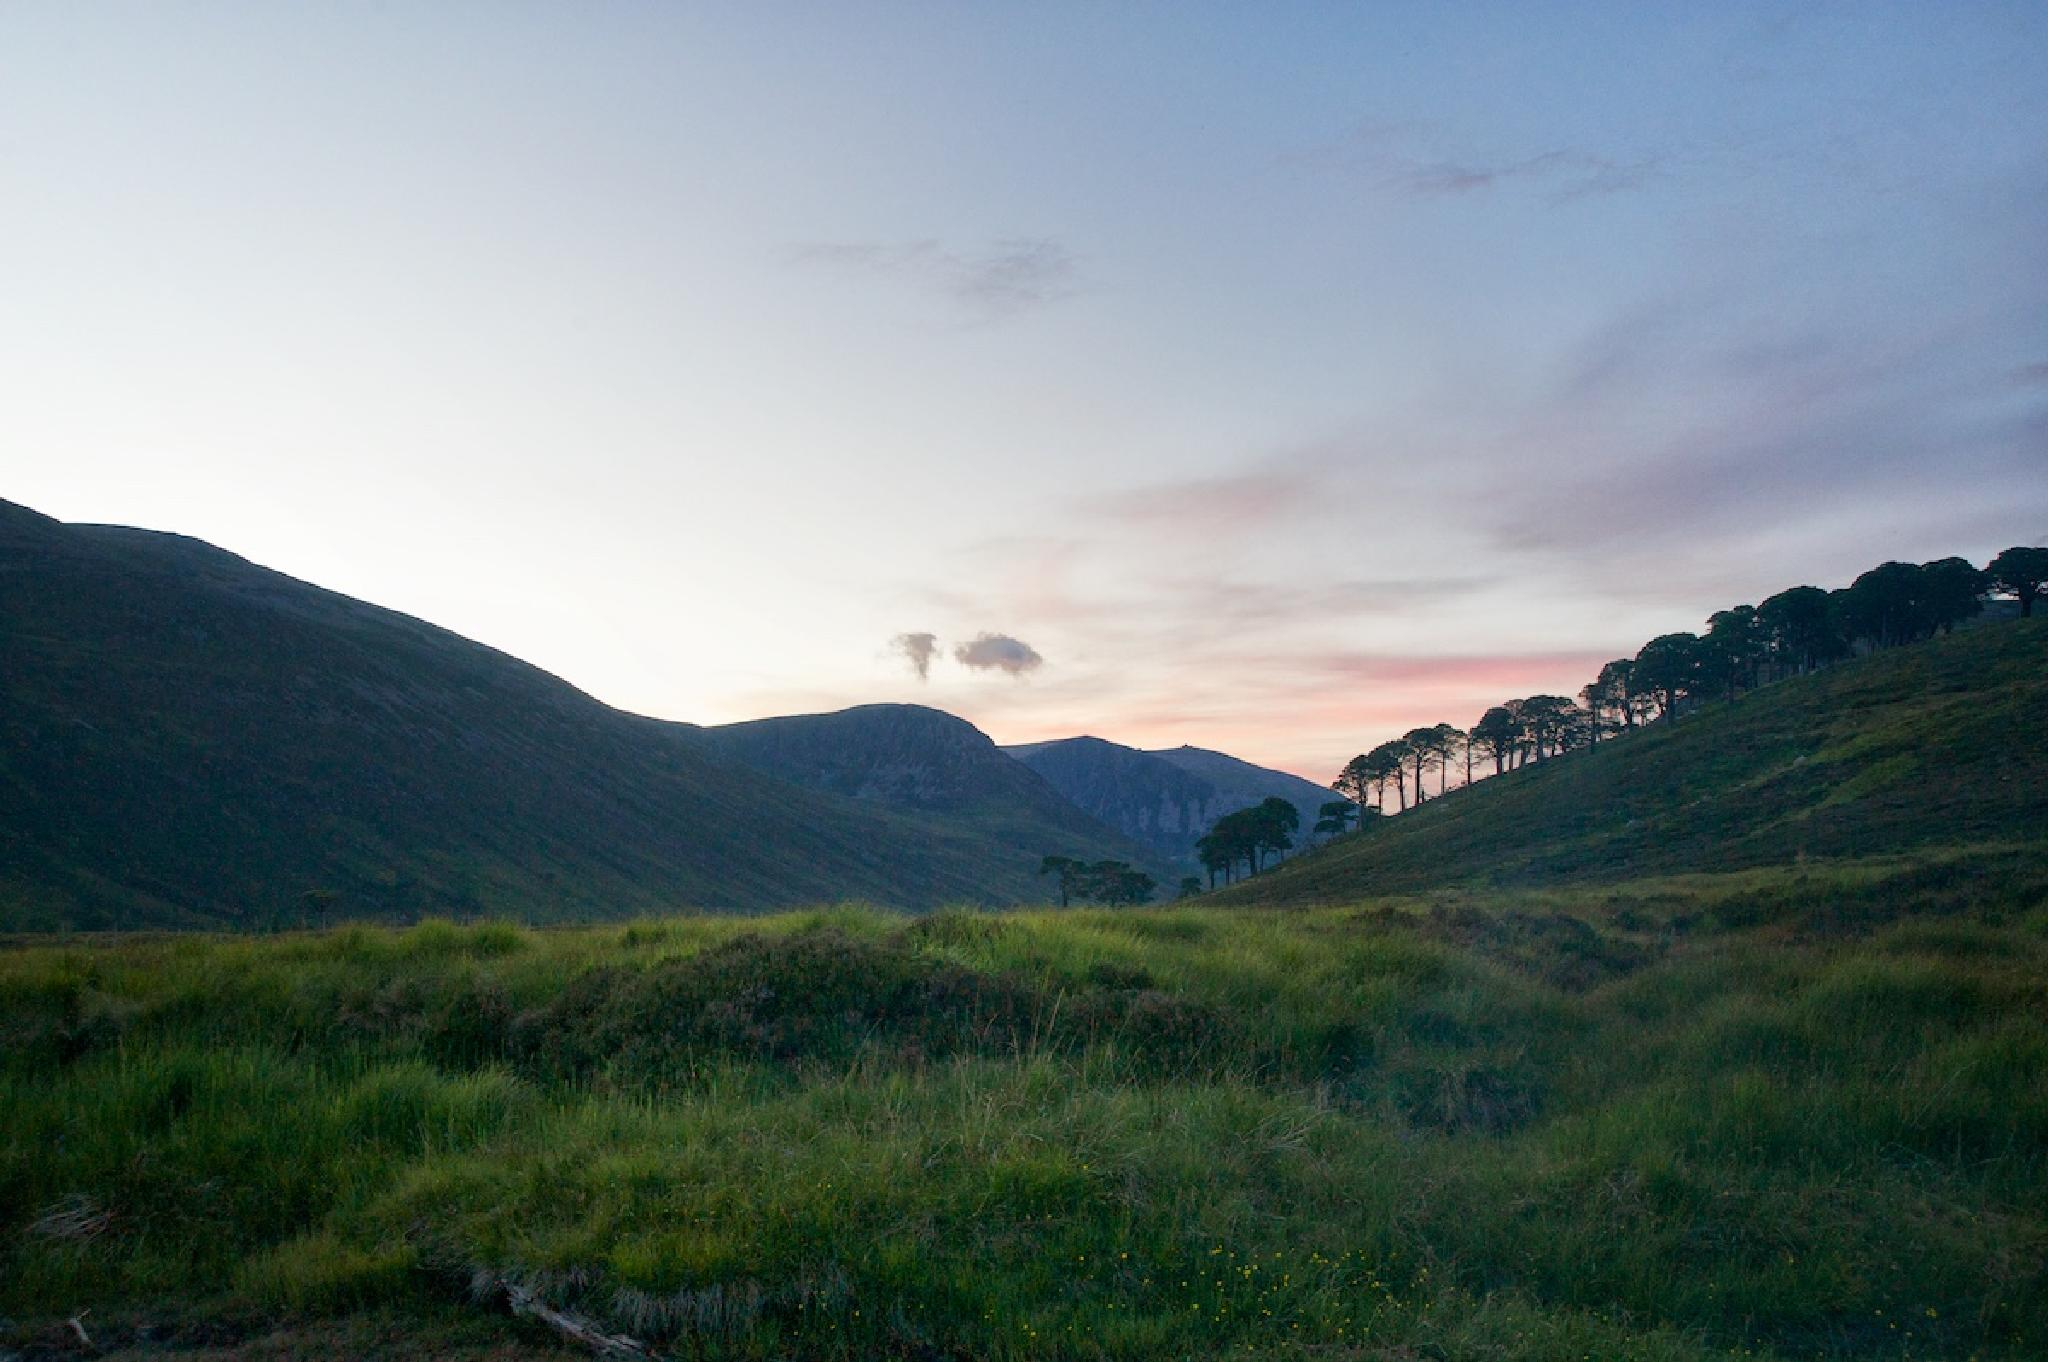 Dusk in the Cairngorms by Ian K. Iles